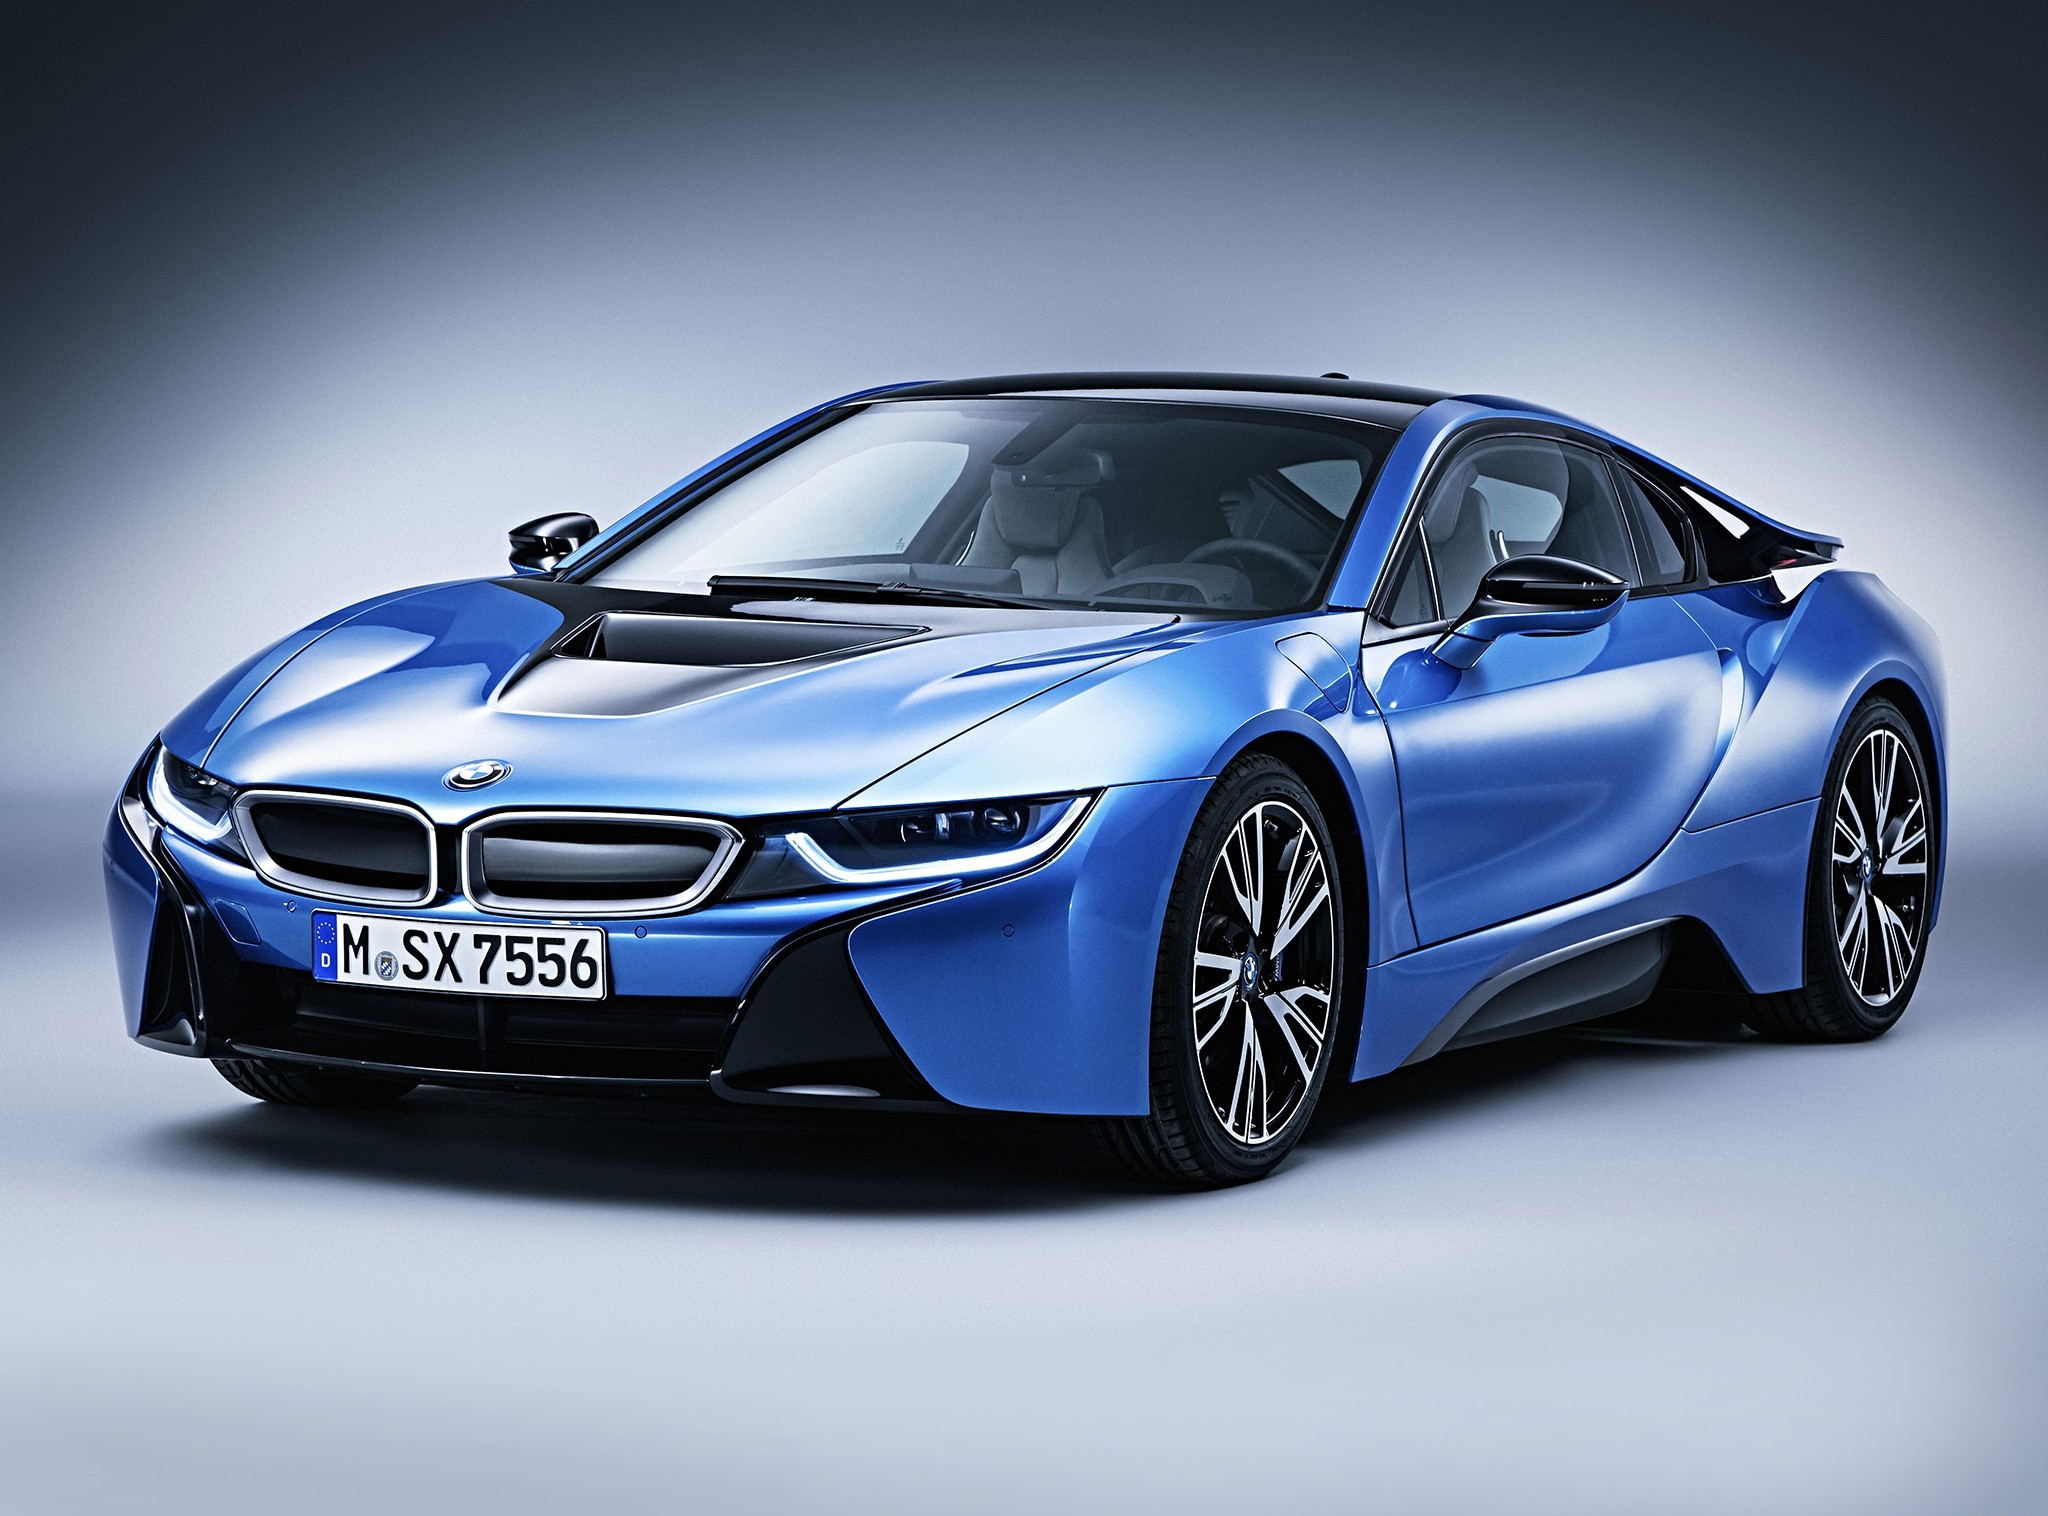 bmw i8 tapeta hd t o 2048x1516 id 549201 wallpaper abyss. Black Bedroom Furniture Sets. Home Design Ideas